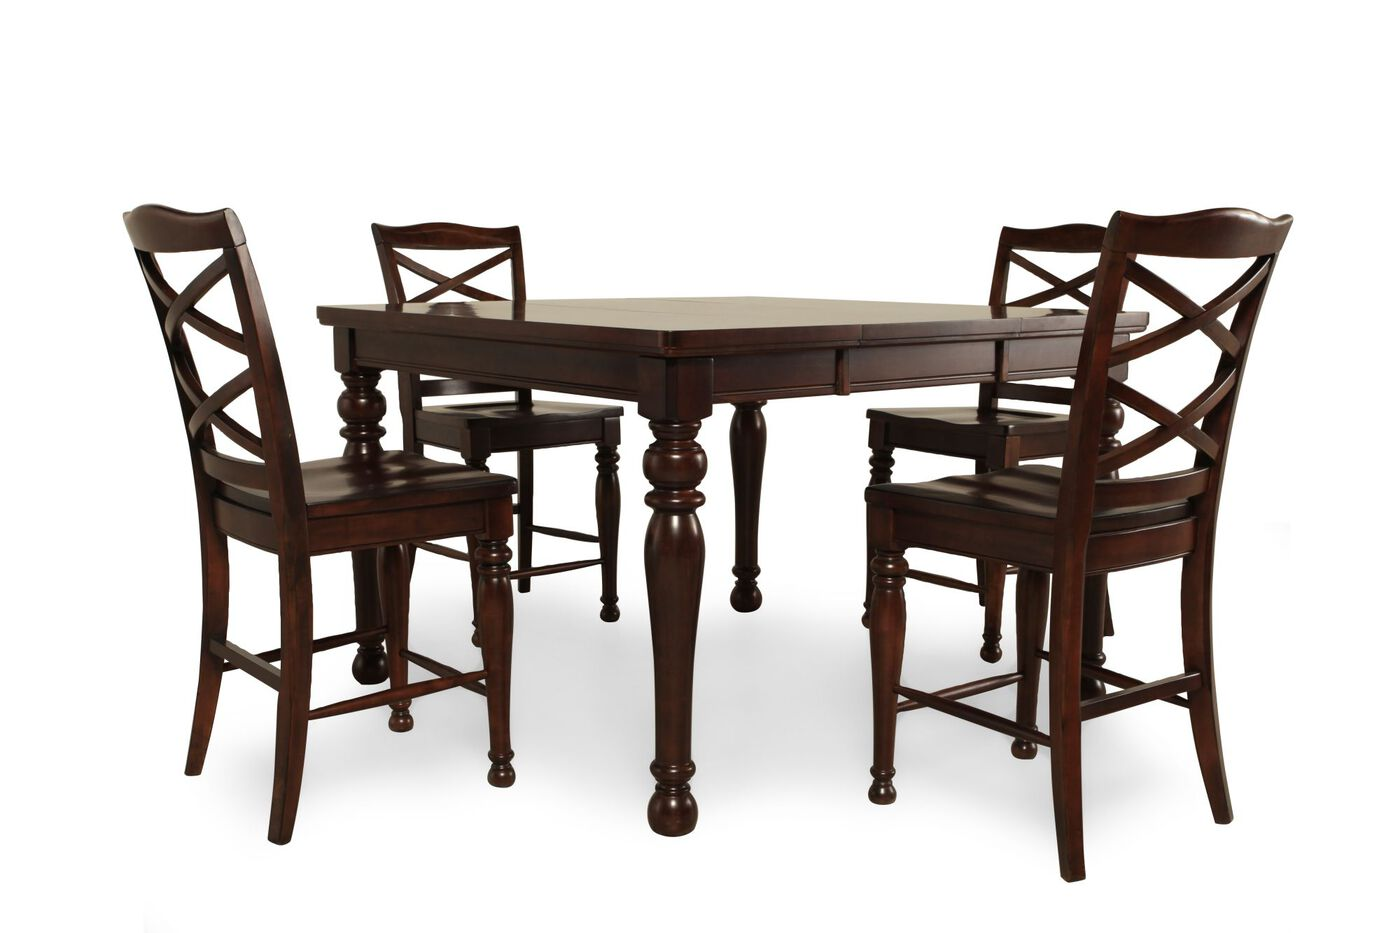 ashley furniture porter collection dining table. ashley porter five-piece pub set furniture collection dining table e